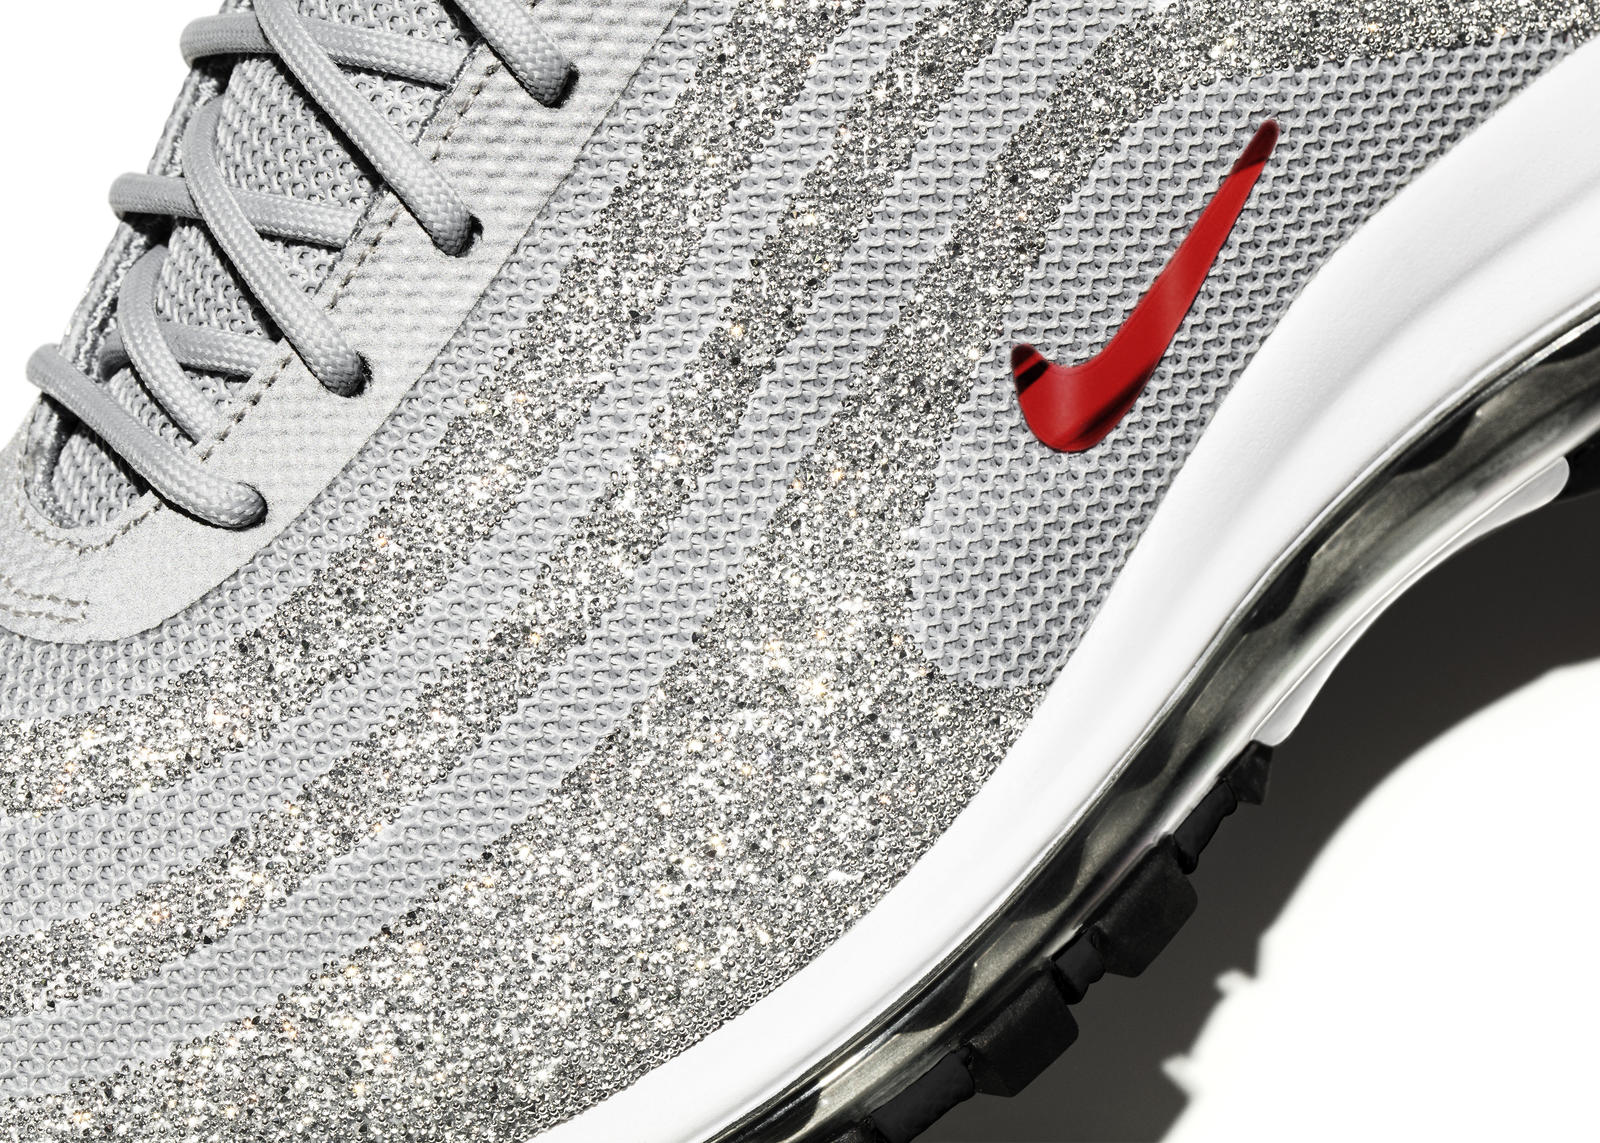 Authentic Nike Air Max 97 Lx Swarovski Crystal Trainers